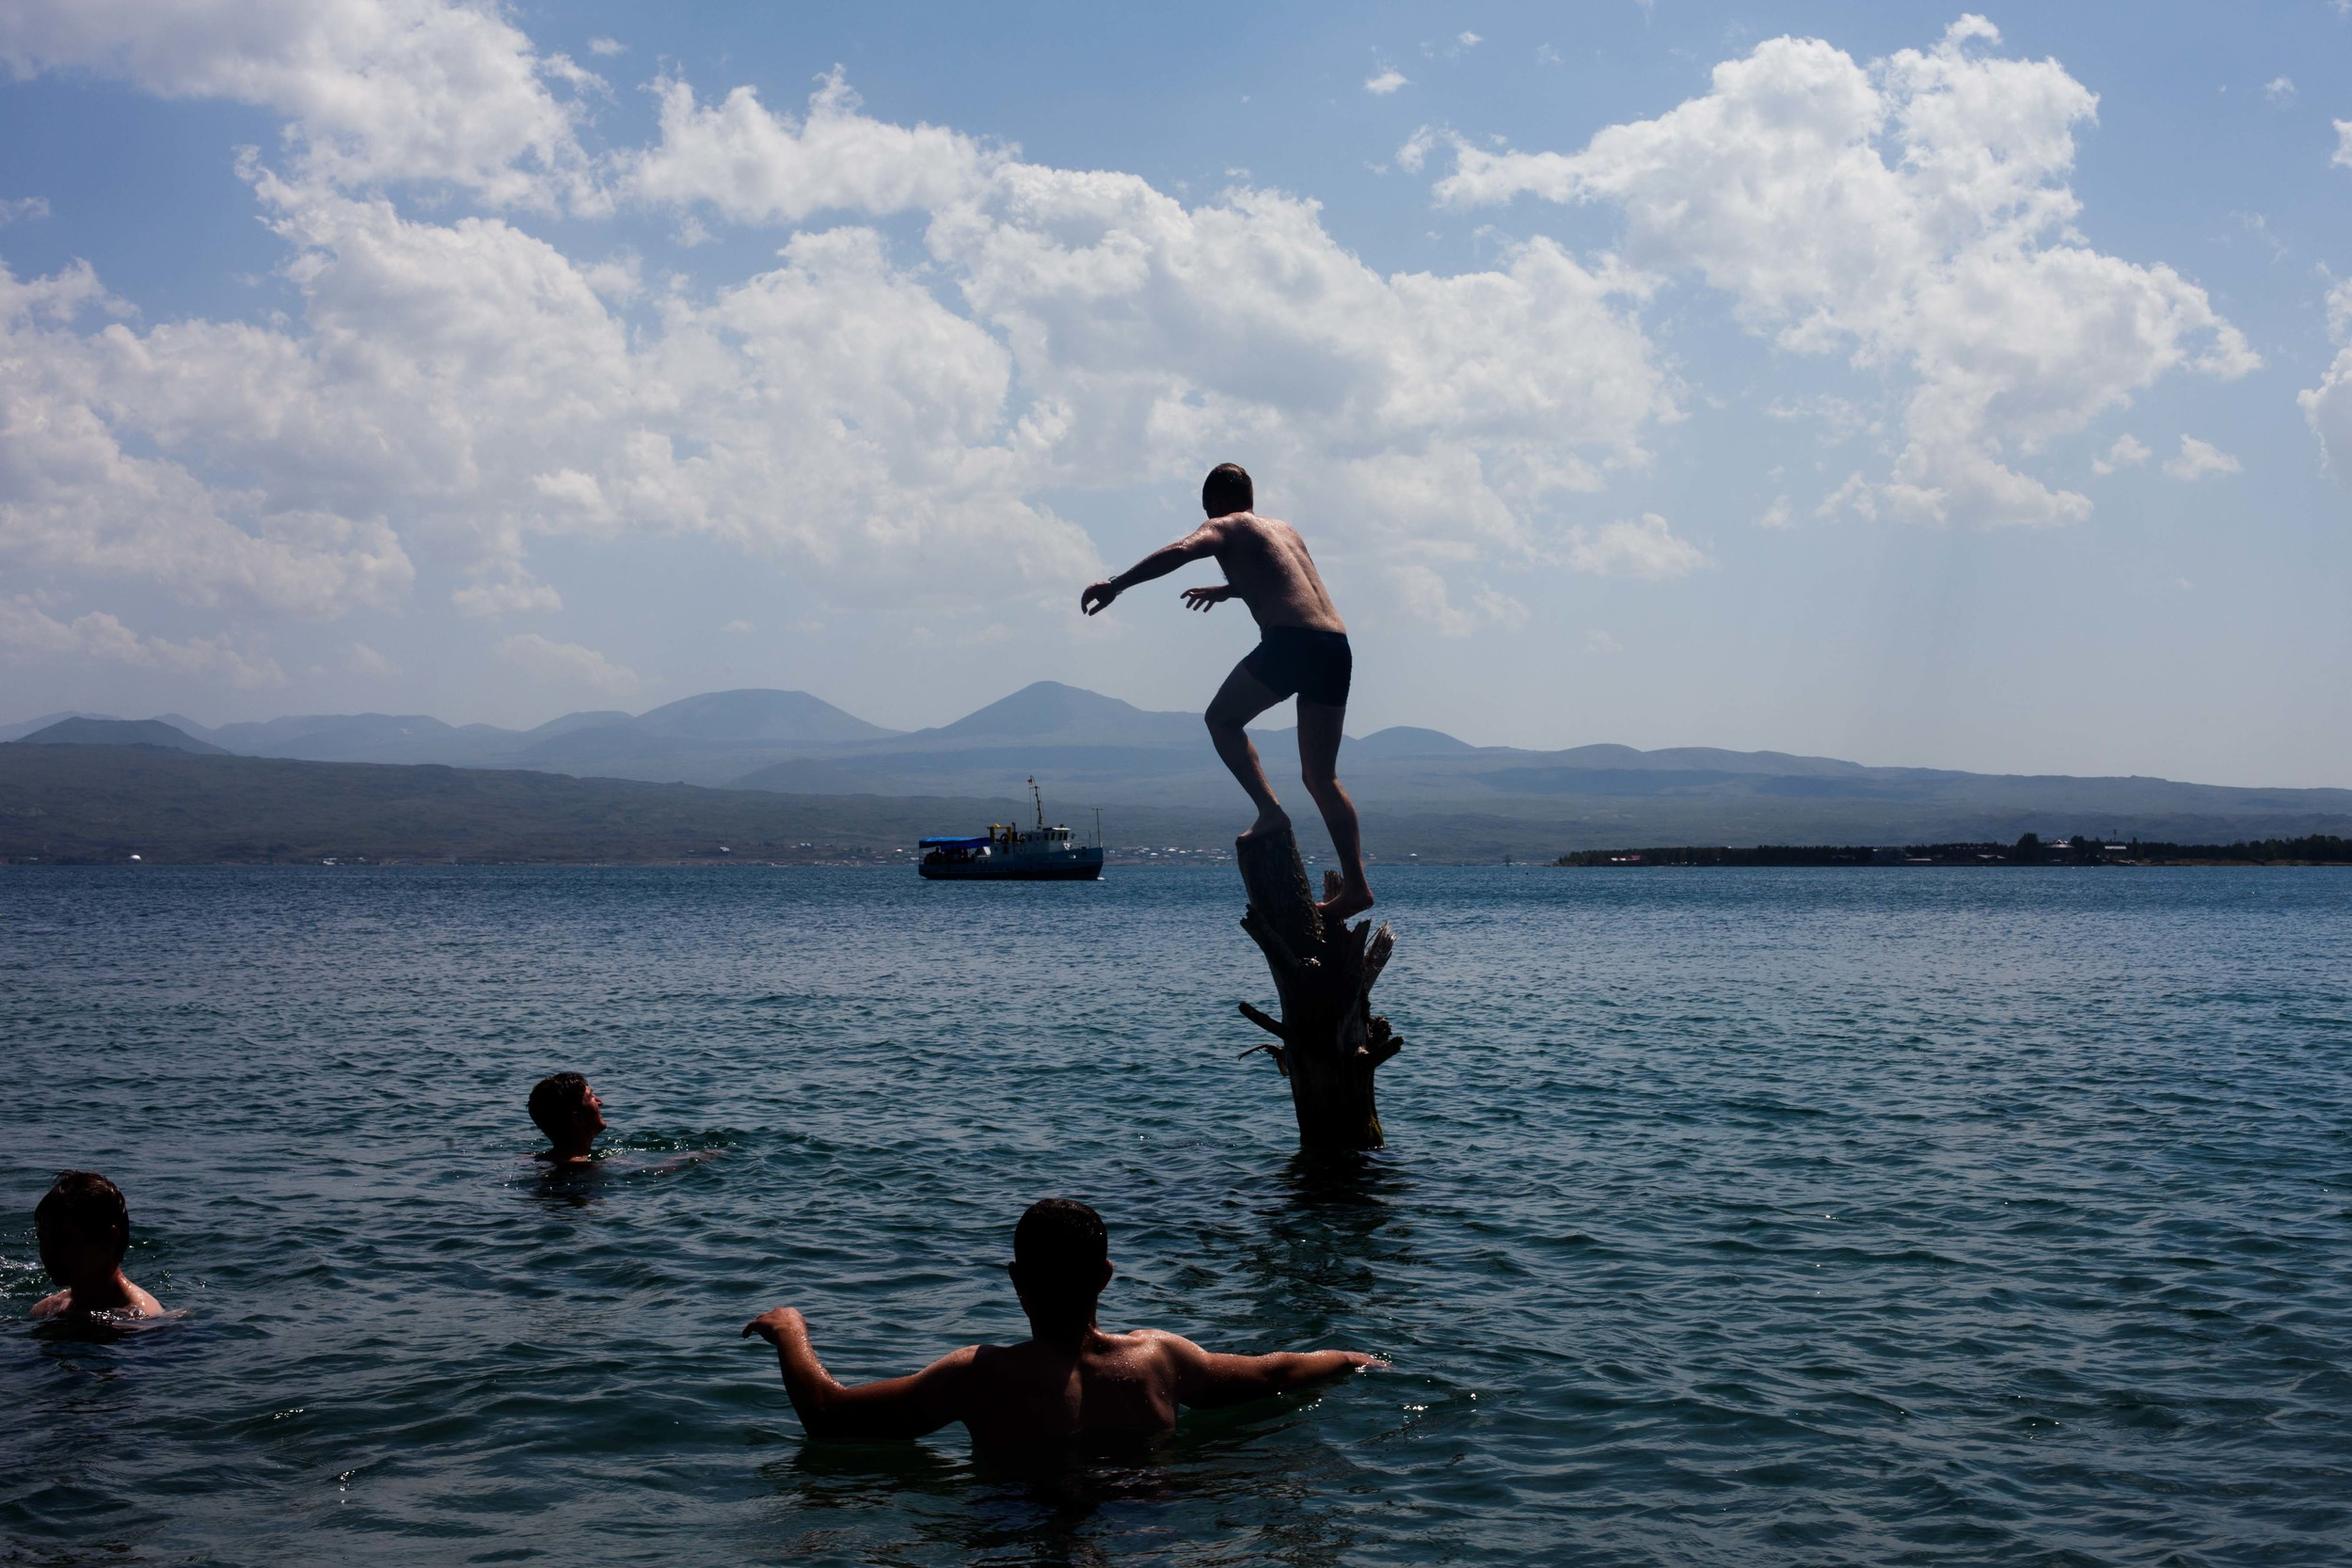 Spitak residents cool off from the summer heat in Lake Sevan. It is one of the largest high-altitude, freshwater lakes in the world and a popular tourist destination.